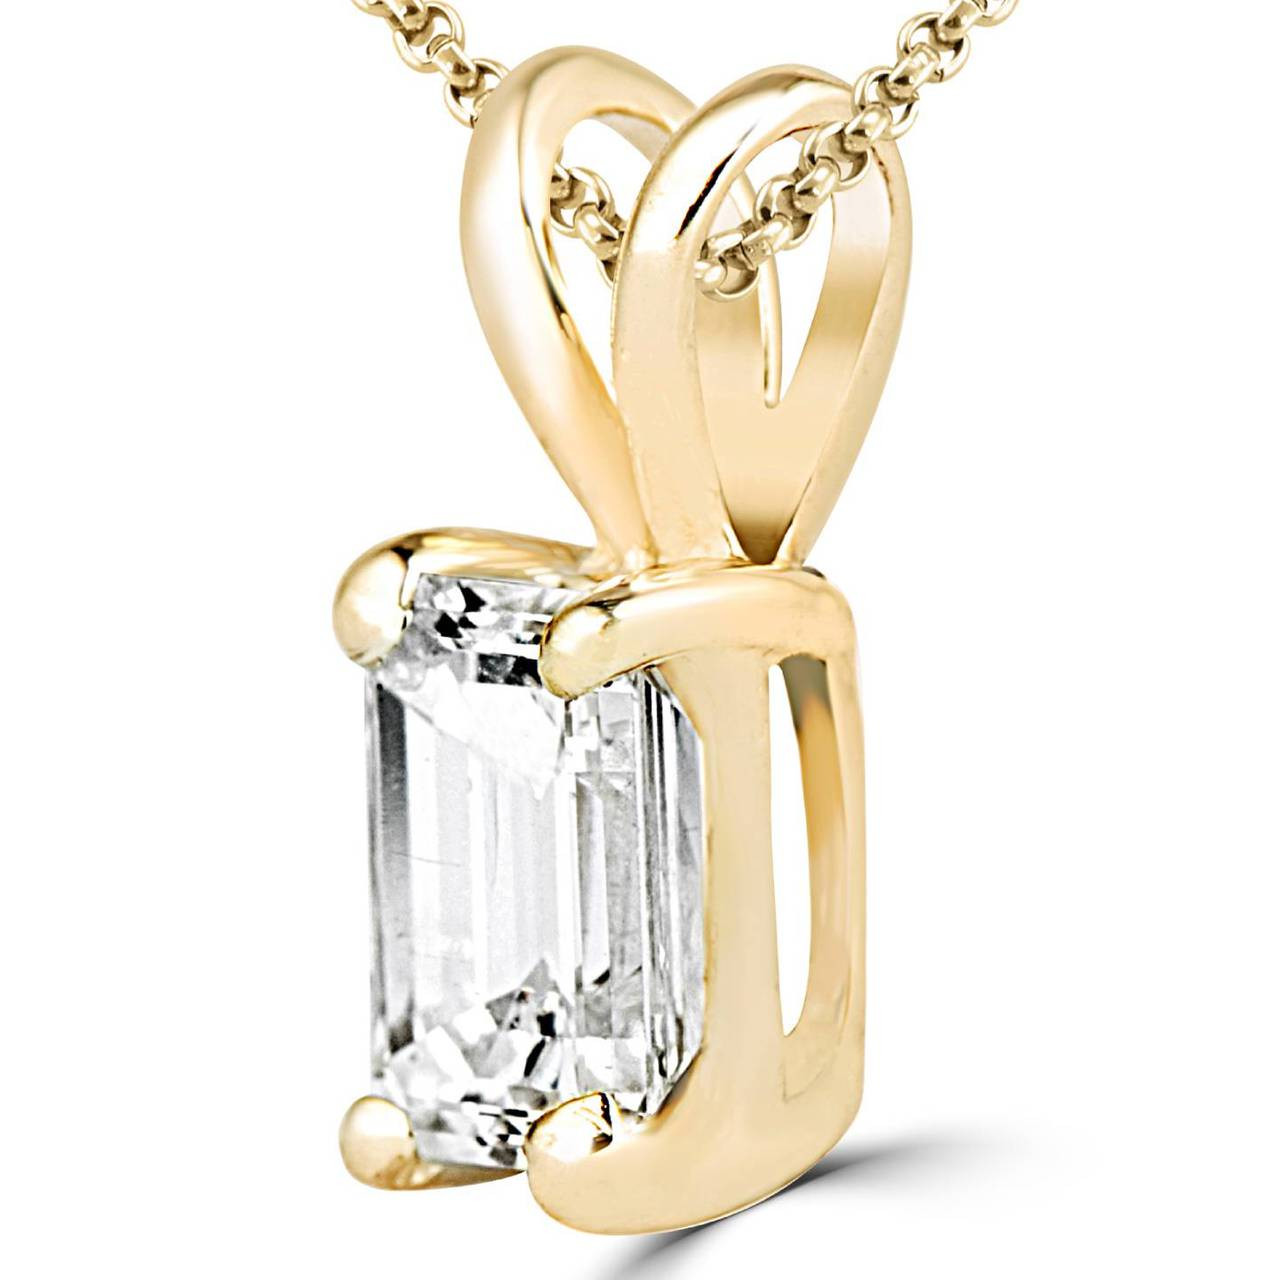 Emerald diamond pendant necklace bijoux majesty emerald cut diamond solitaire 4 prong pendant necklace with chain in yellow gold aloadofball Choice Image